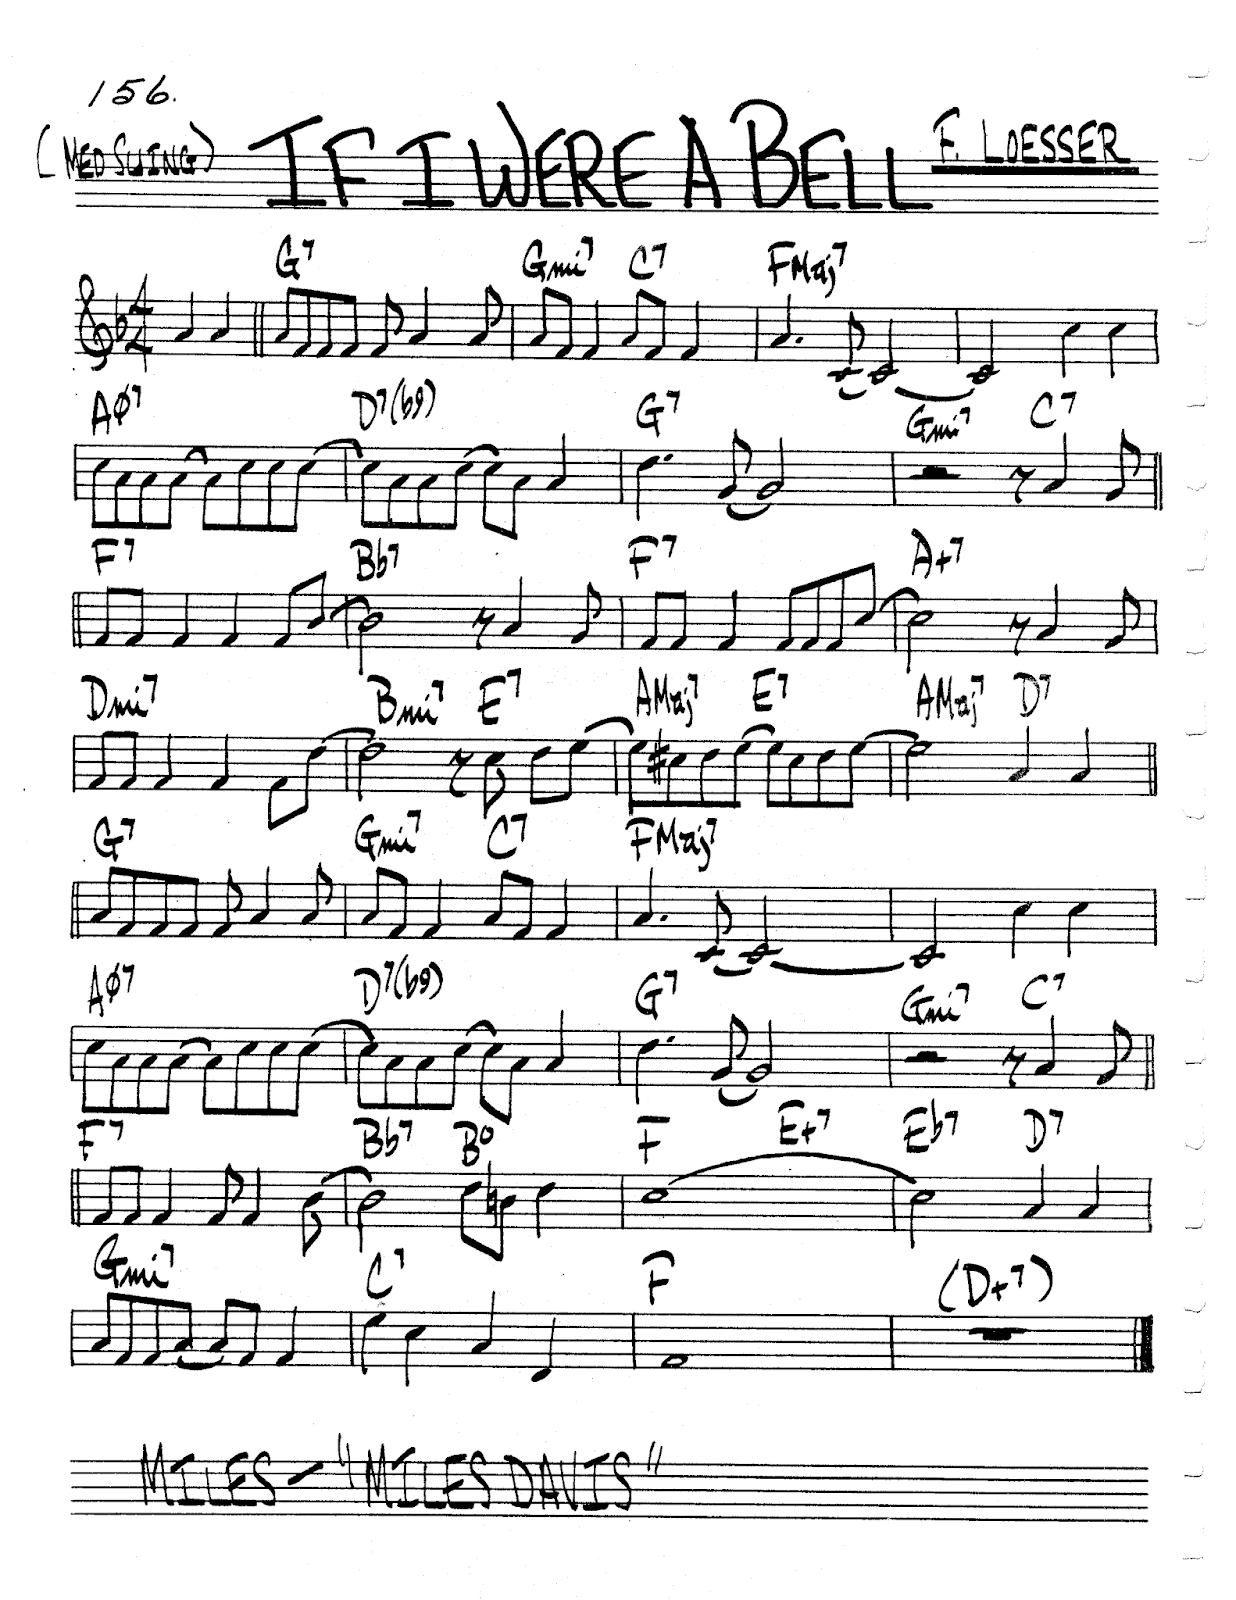 Practice Jazz Jazz Real Book Ii Page 156 If I Were A Bell Frank Loesser Jazz Standard Sheet Music Sheet Music Jazz Standard Jazz